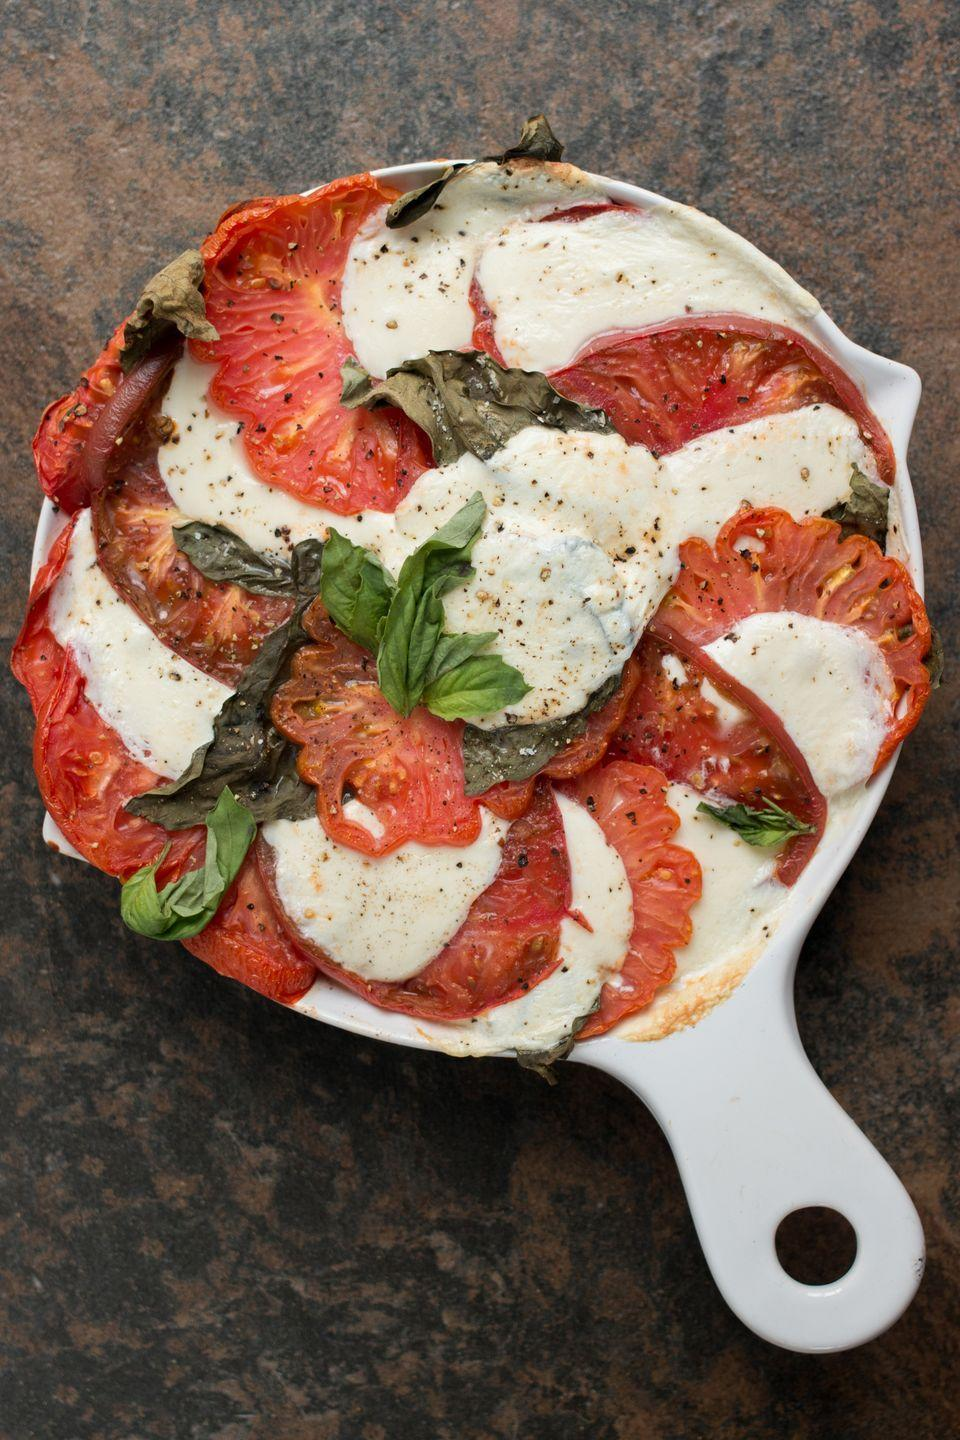 "<p>We've all enjoyed a traditional Caprese salad with layered mozzarella and tomatoes, a hint of basil, and balsamic vinaigrette. You may think there is no improving on perfection, but this is a slightly new take, a hot one, in casserole form, and believe me when I tell you there is a time and place for both the traditional and this twist!</p><p>Get the recipe from <a href=""https://www.delish.com/cooking/recipe-ideas/recipes/a54333/caprese-quinoa-casserole-recipe/"" rel=""nofollow noopener"" target=""_blank"" data-ylk=""slk:Delish"" class=""link rapid-noclick-resp"">Delish</a>.</p>"